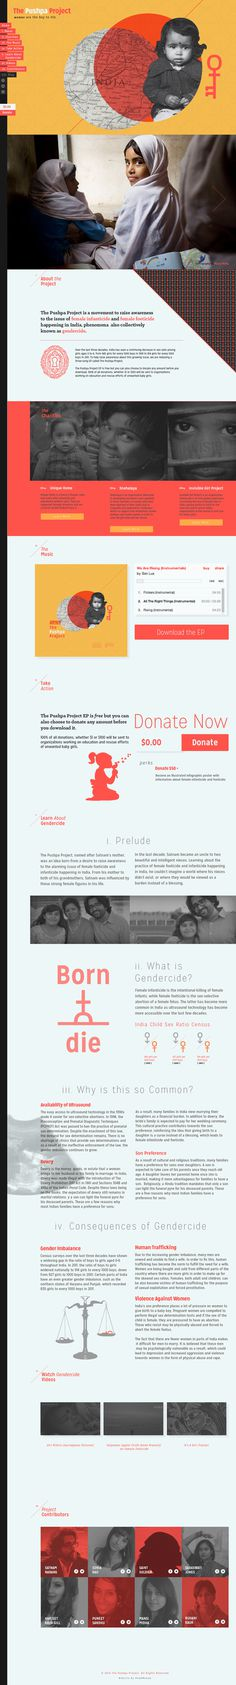 Pushpa Project Website #infographic #illustration #typography #layout #website #icon #key #female #story #gender #non #profit #feminine